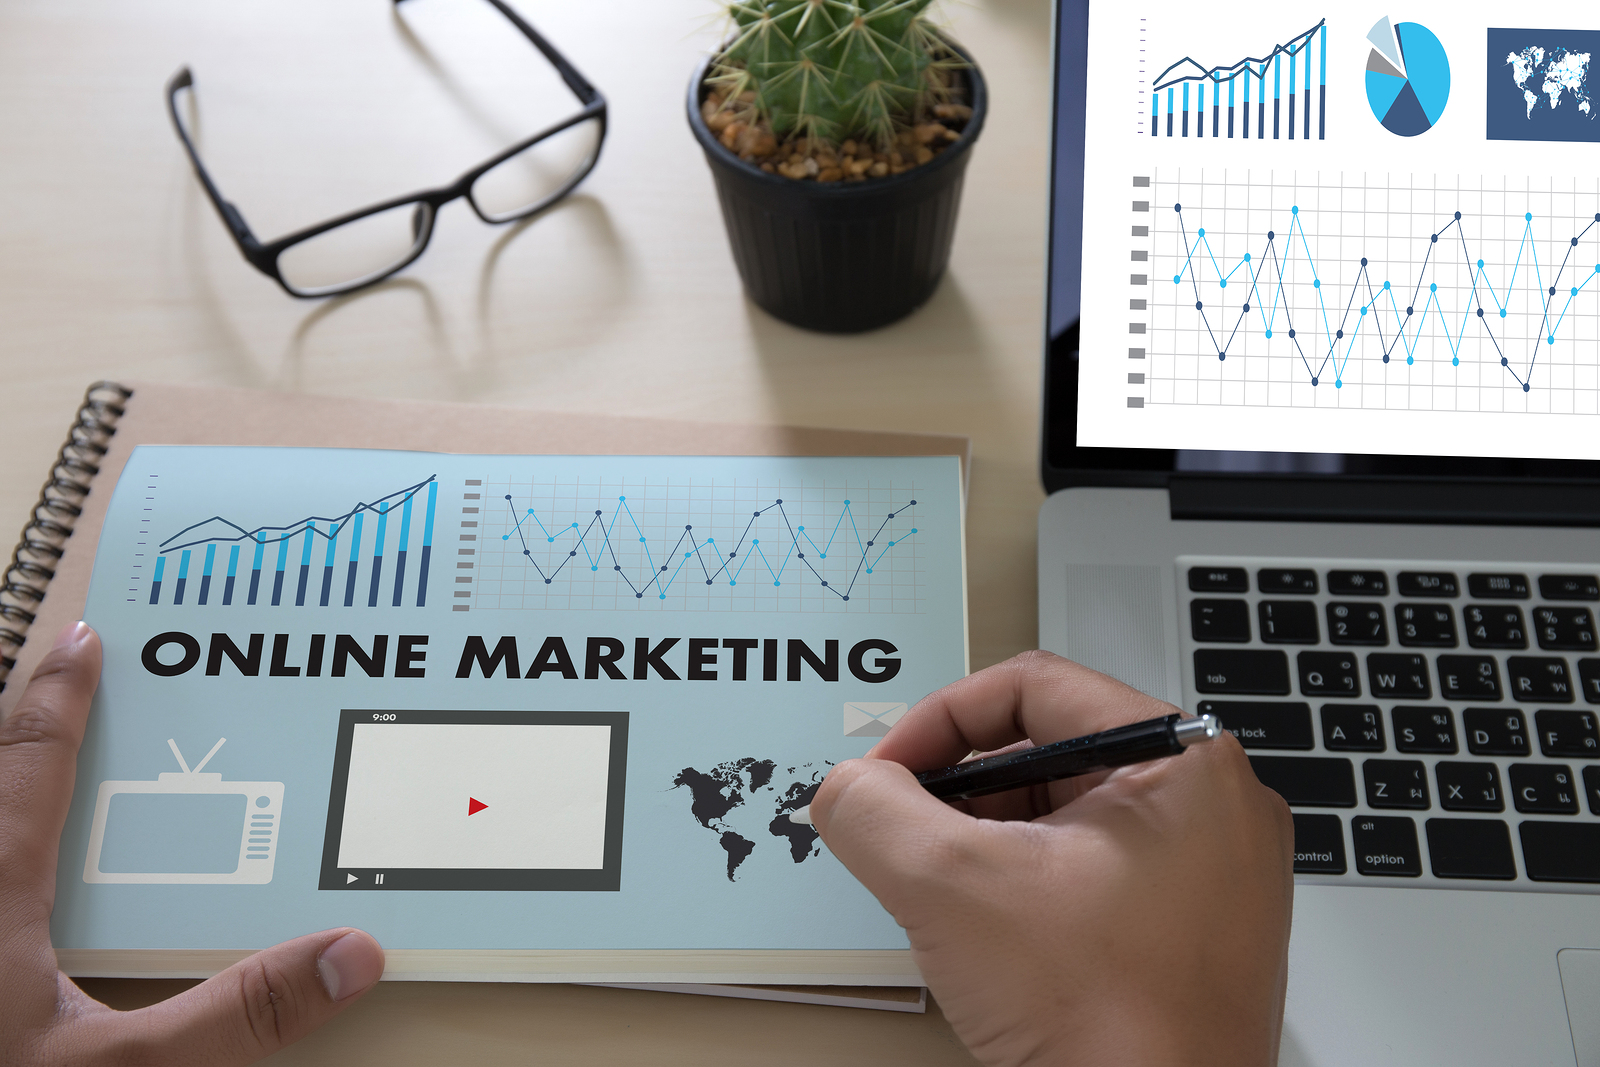 Online Marketing Melbourne: The perfection of service can fetch more business for you